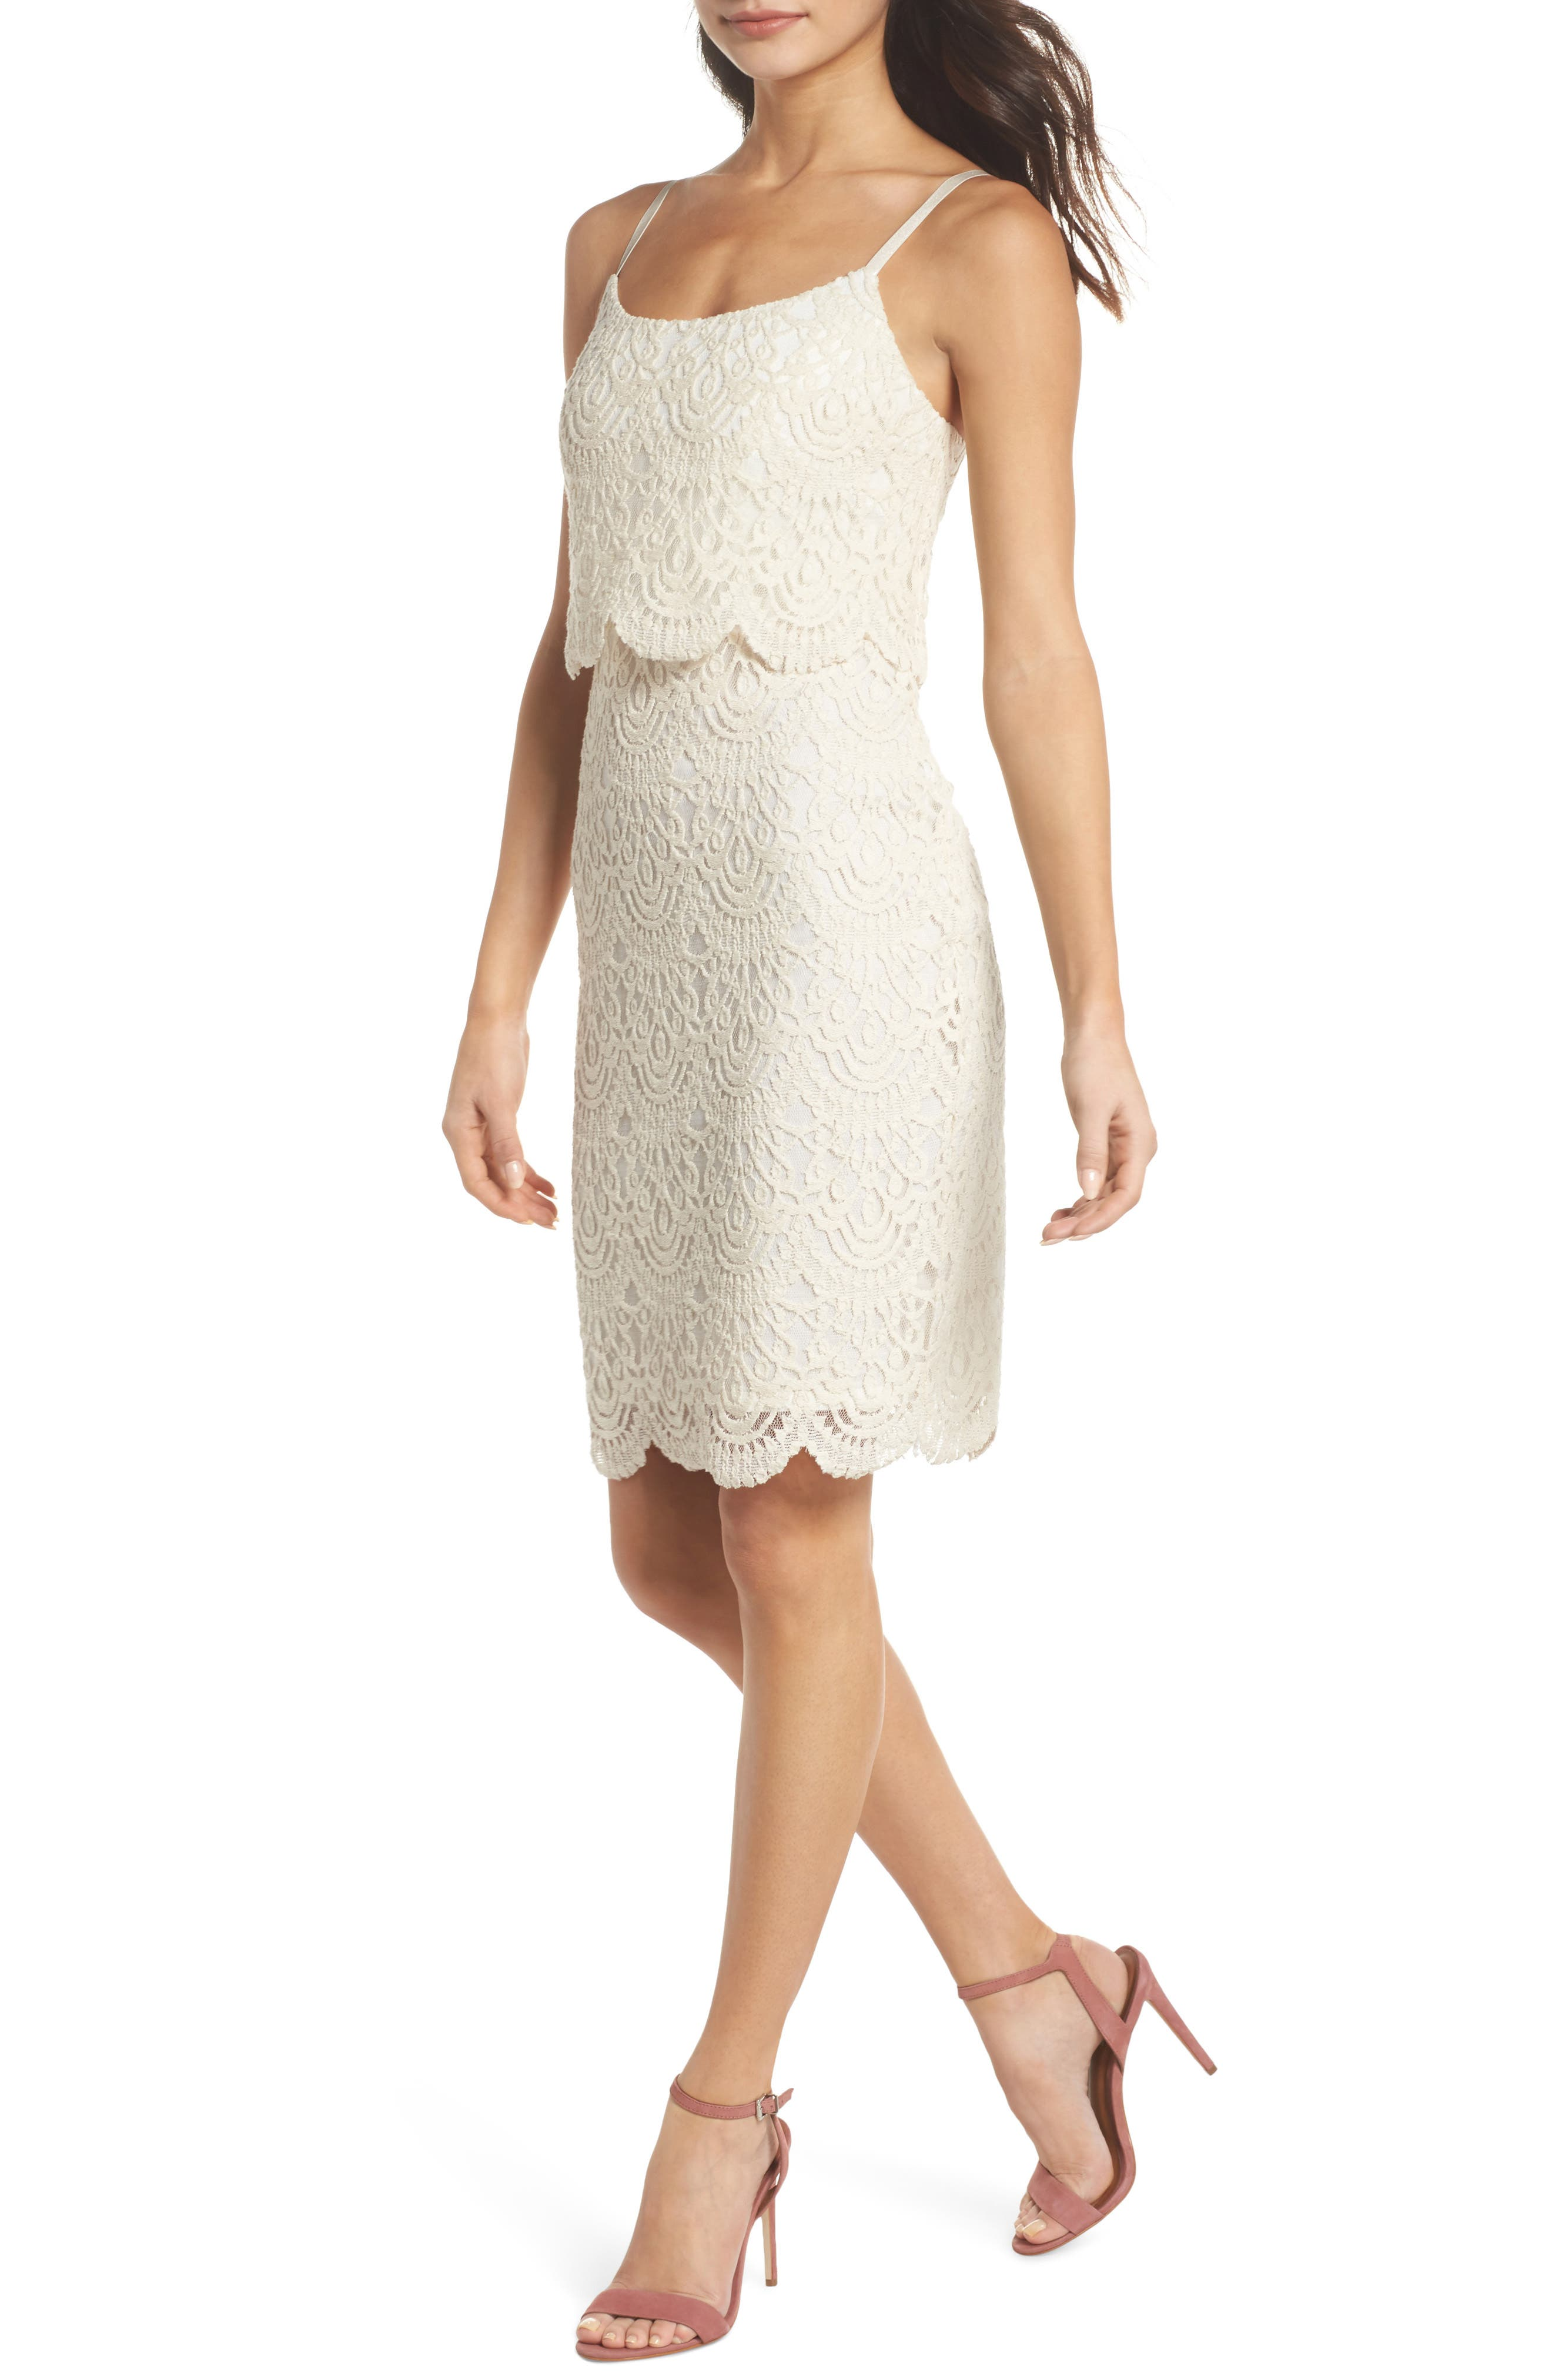 Barnsdall Afternoon Tiered Lace Dress,                         Main,                         color, Vintage Lace